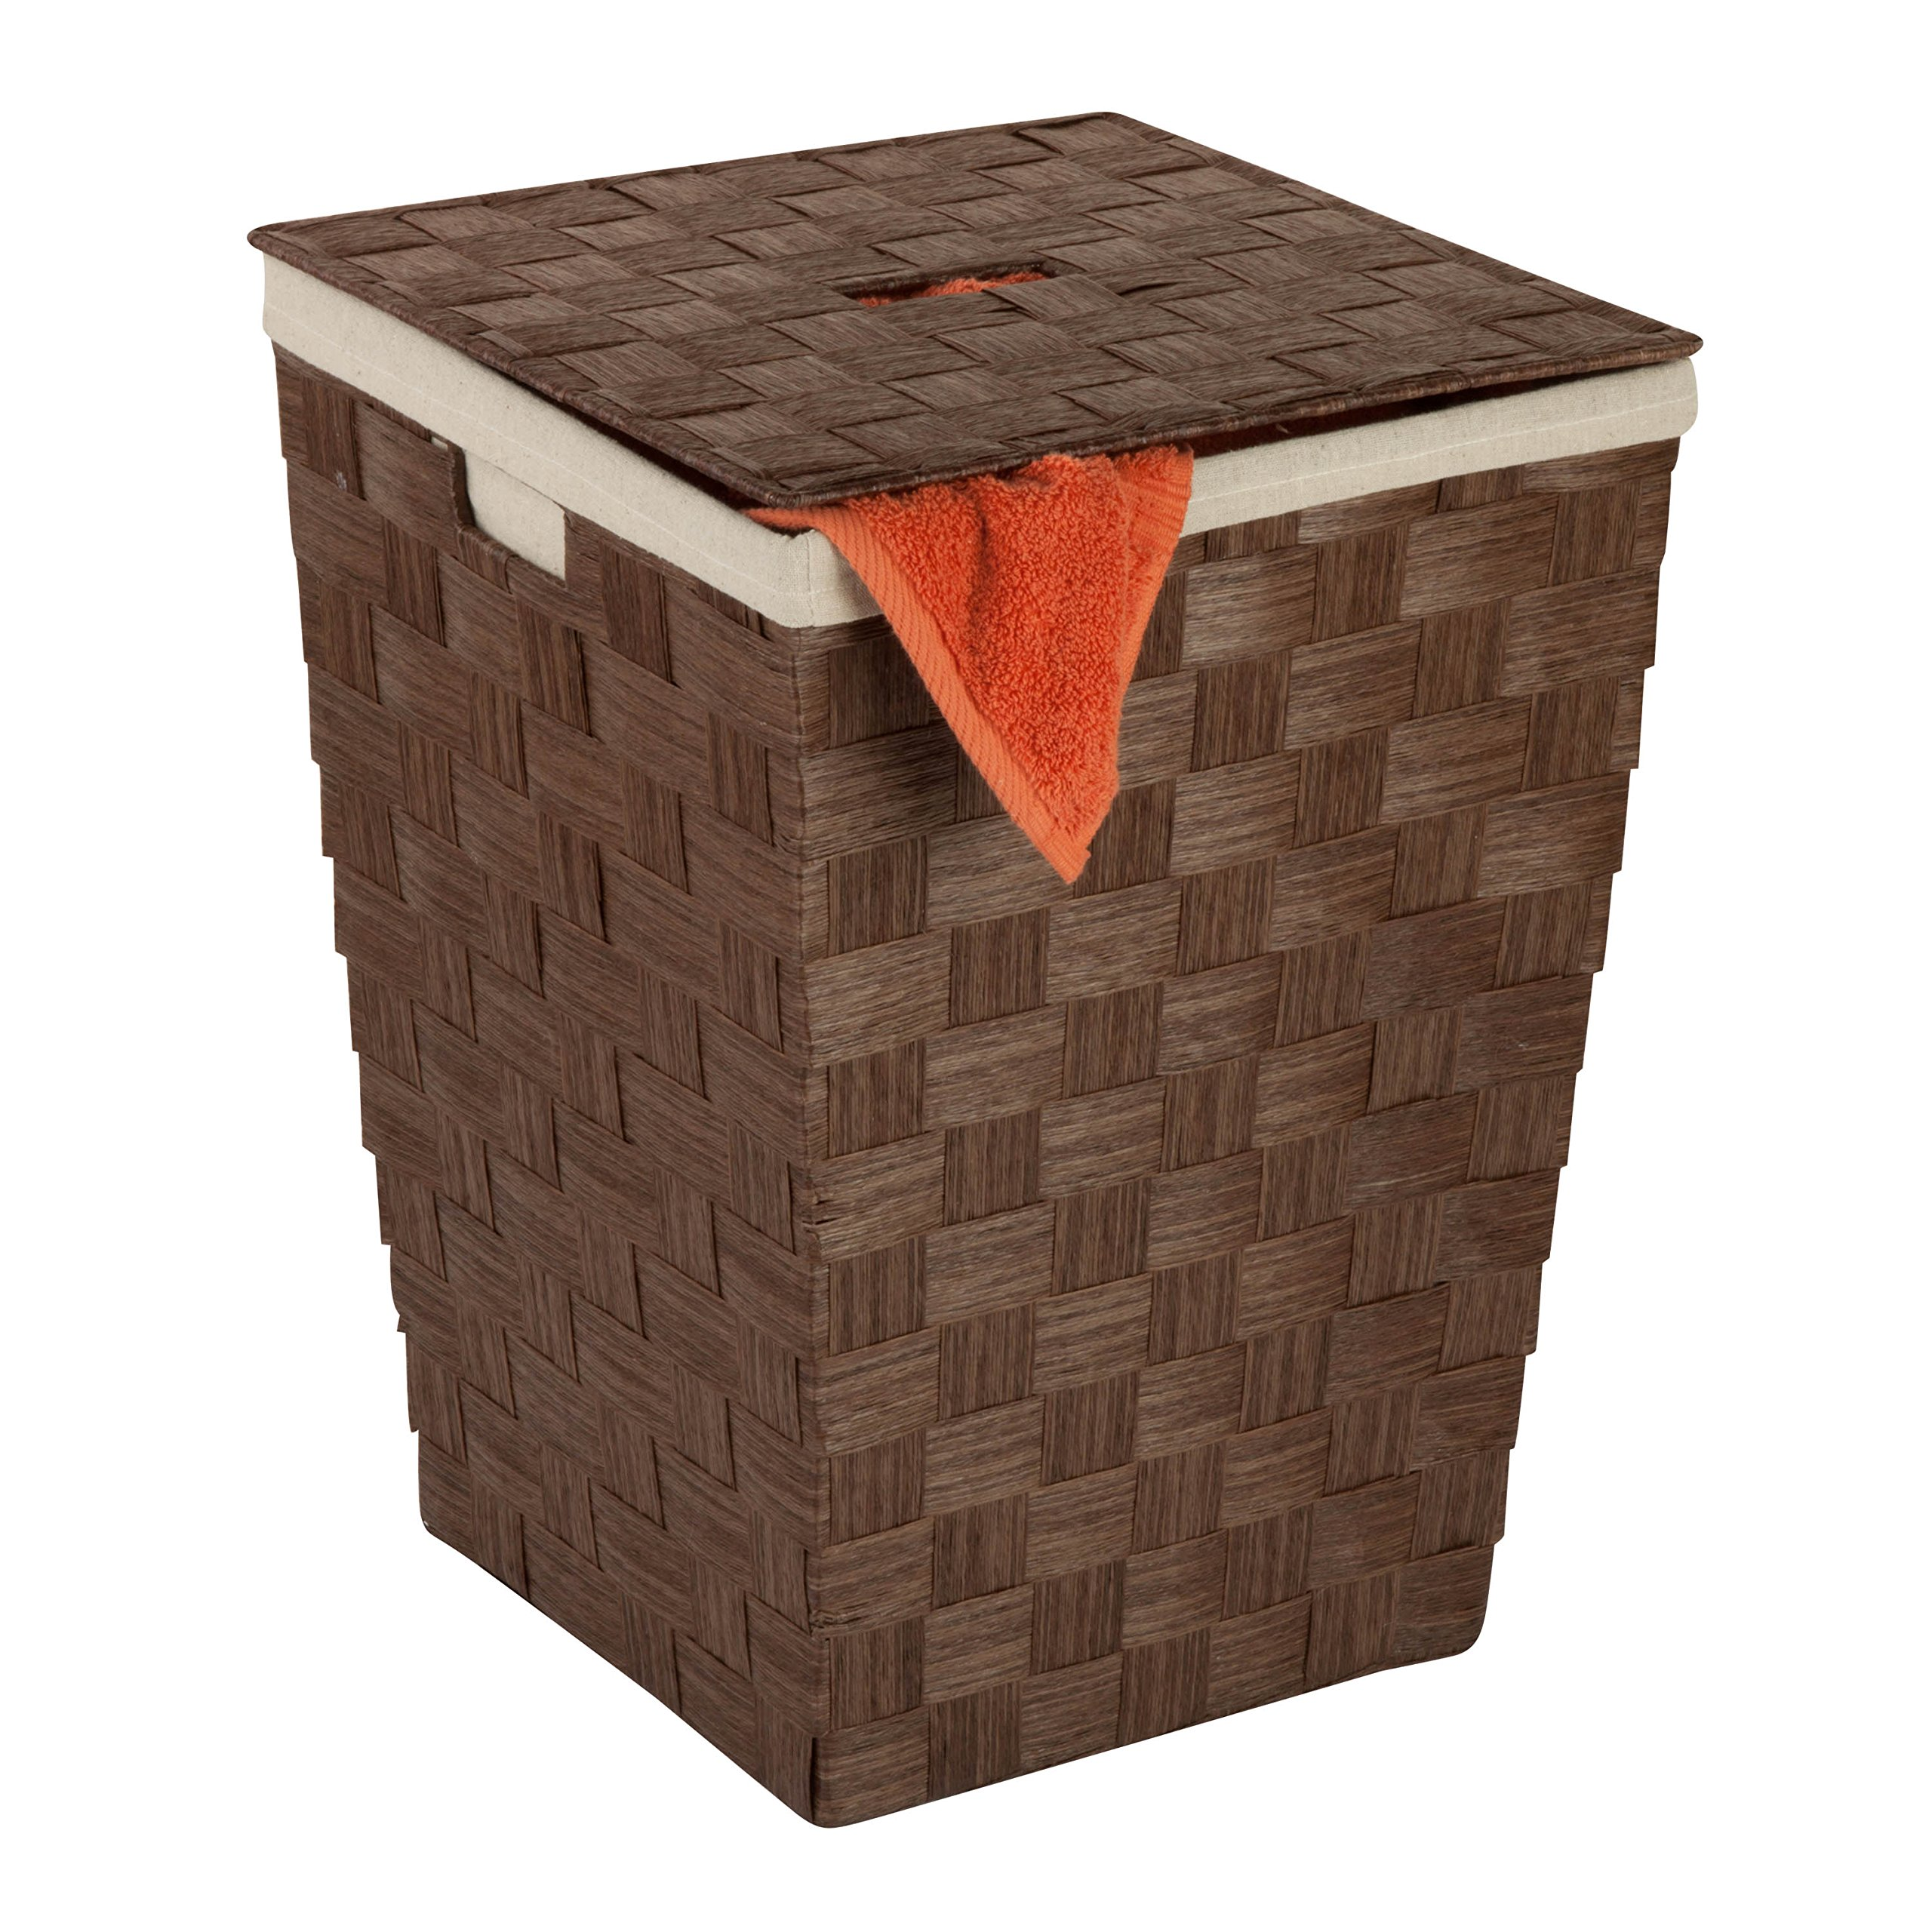 Honey-Can-Do HMP-03729 Woven Hamper with Natural Cotton Liner and Lid, Brown, 15 by 20